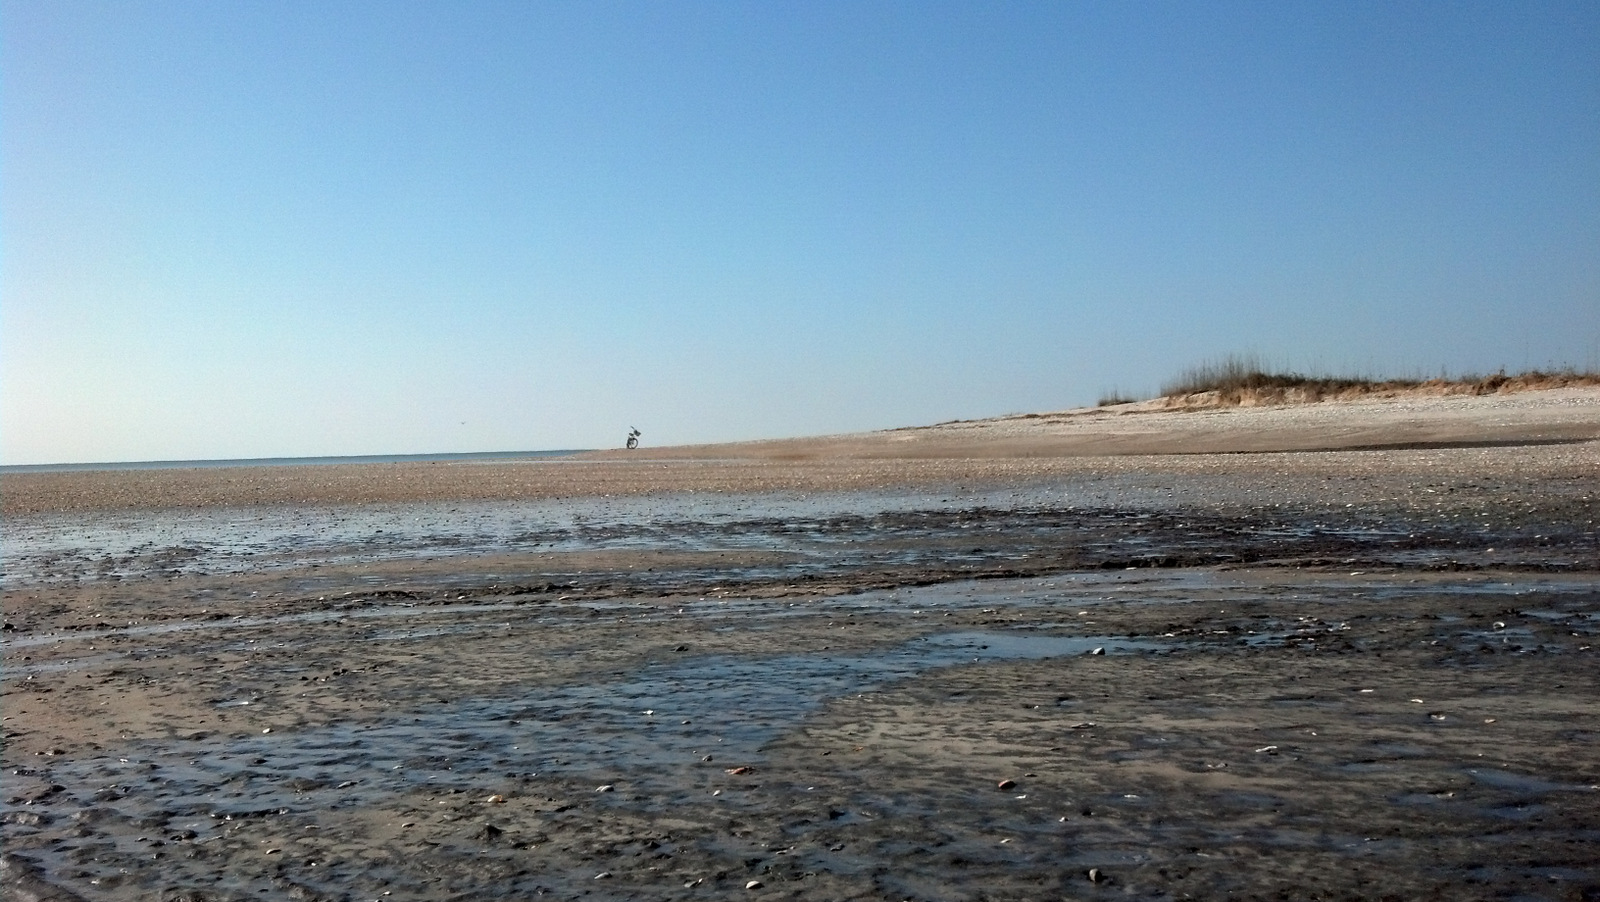 Looking South At Low Tide From Jeremy Inslet